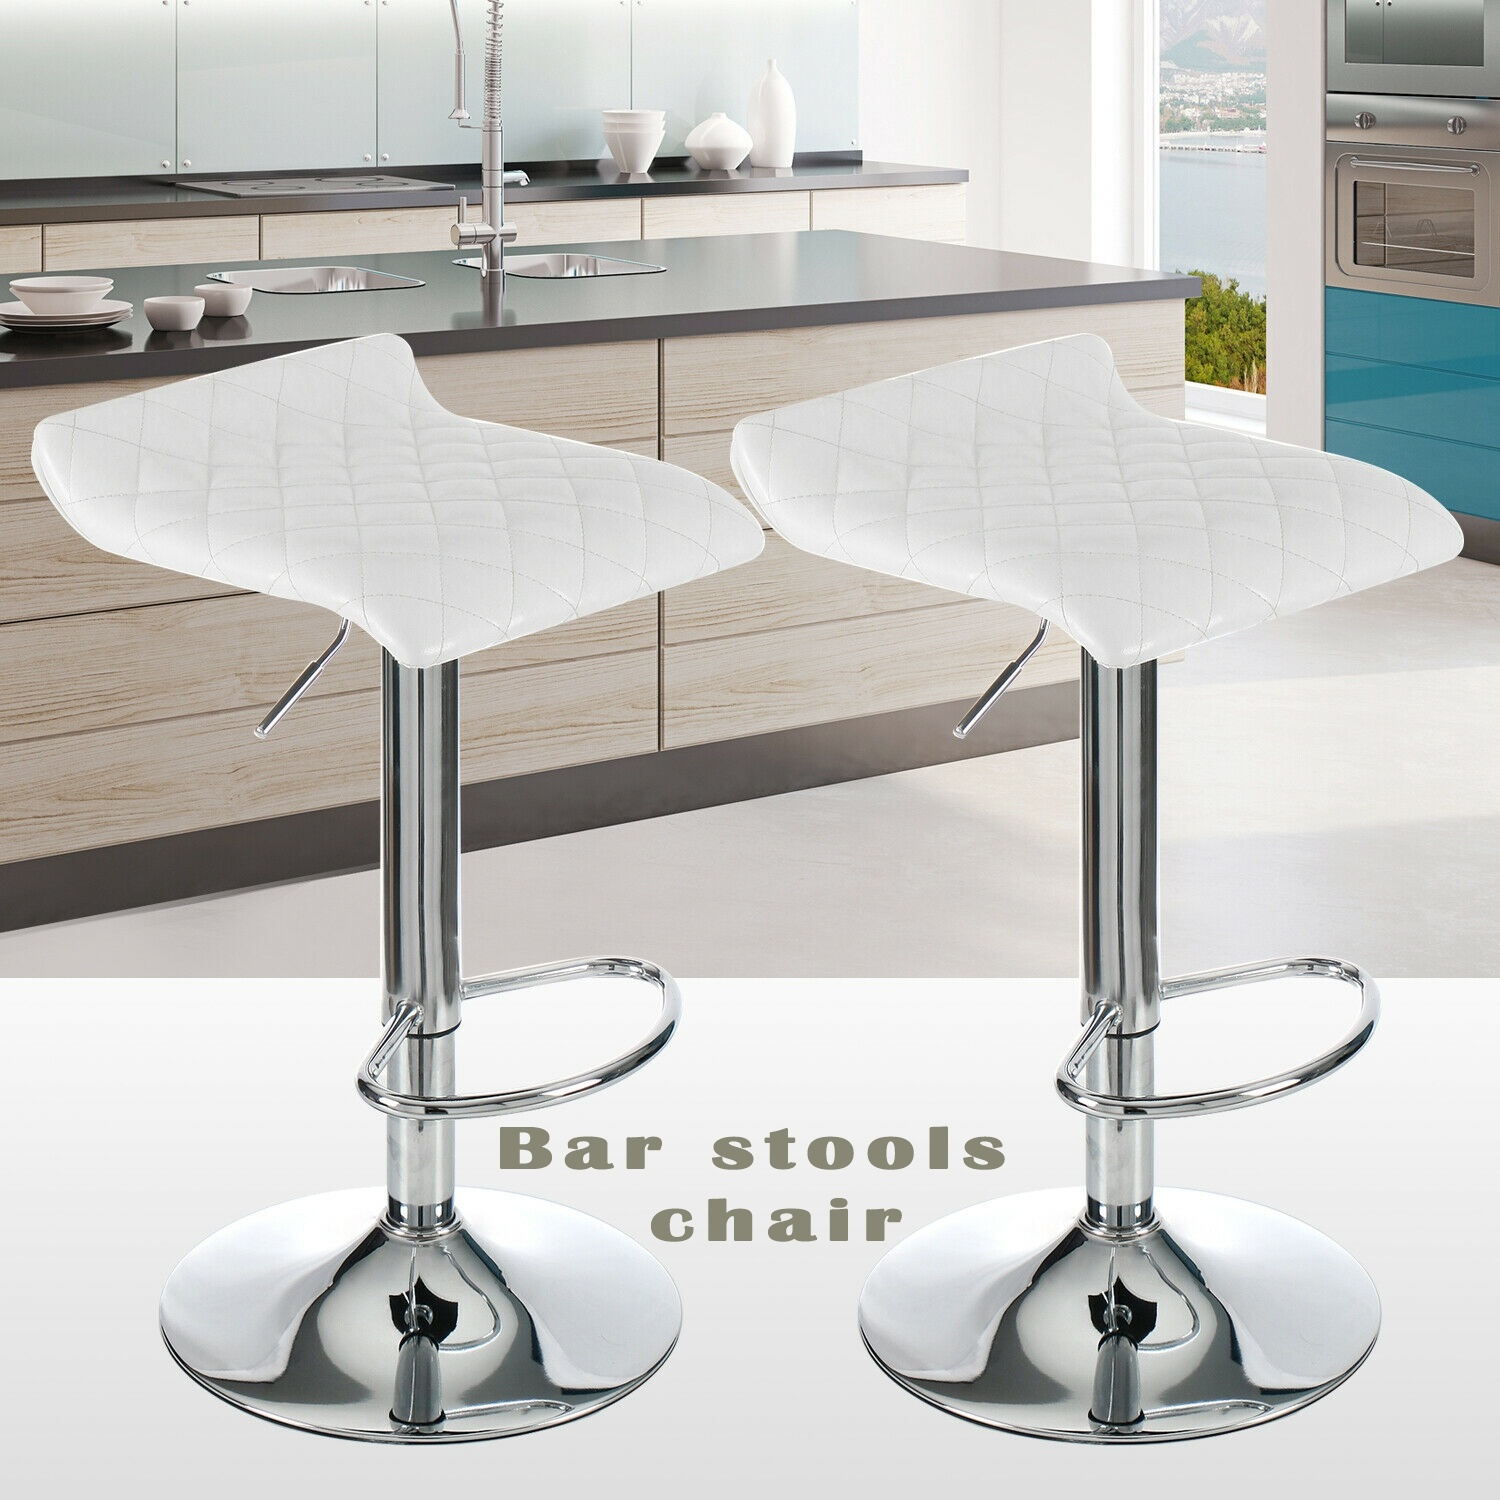 Set Of 2 Bar Stools Counter Pub Chairs Adjustable Swivel Hydraulic With Footring